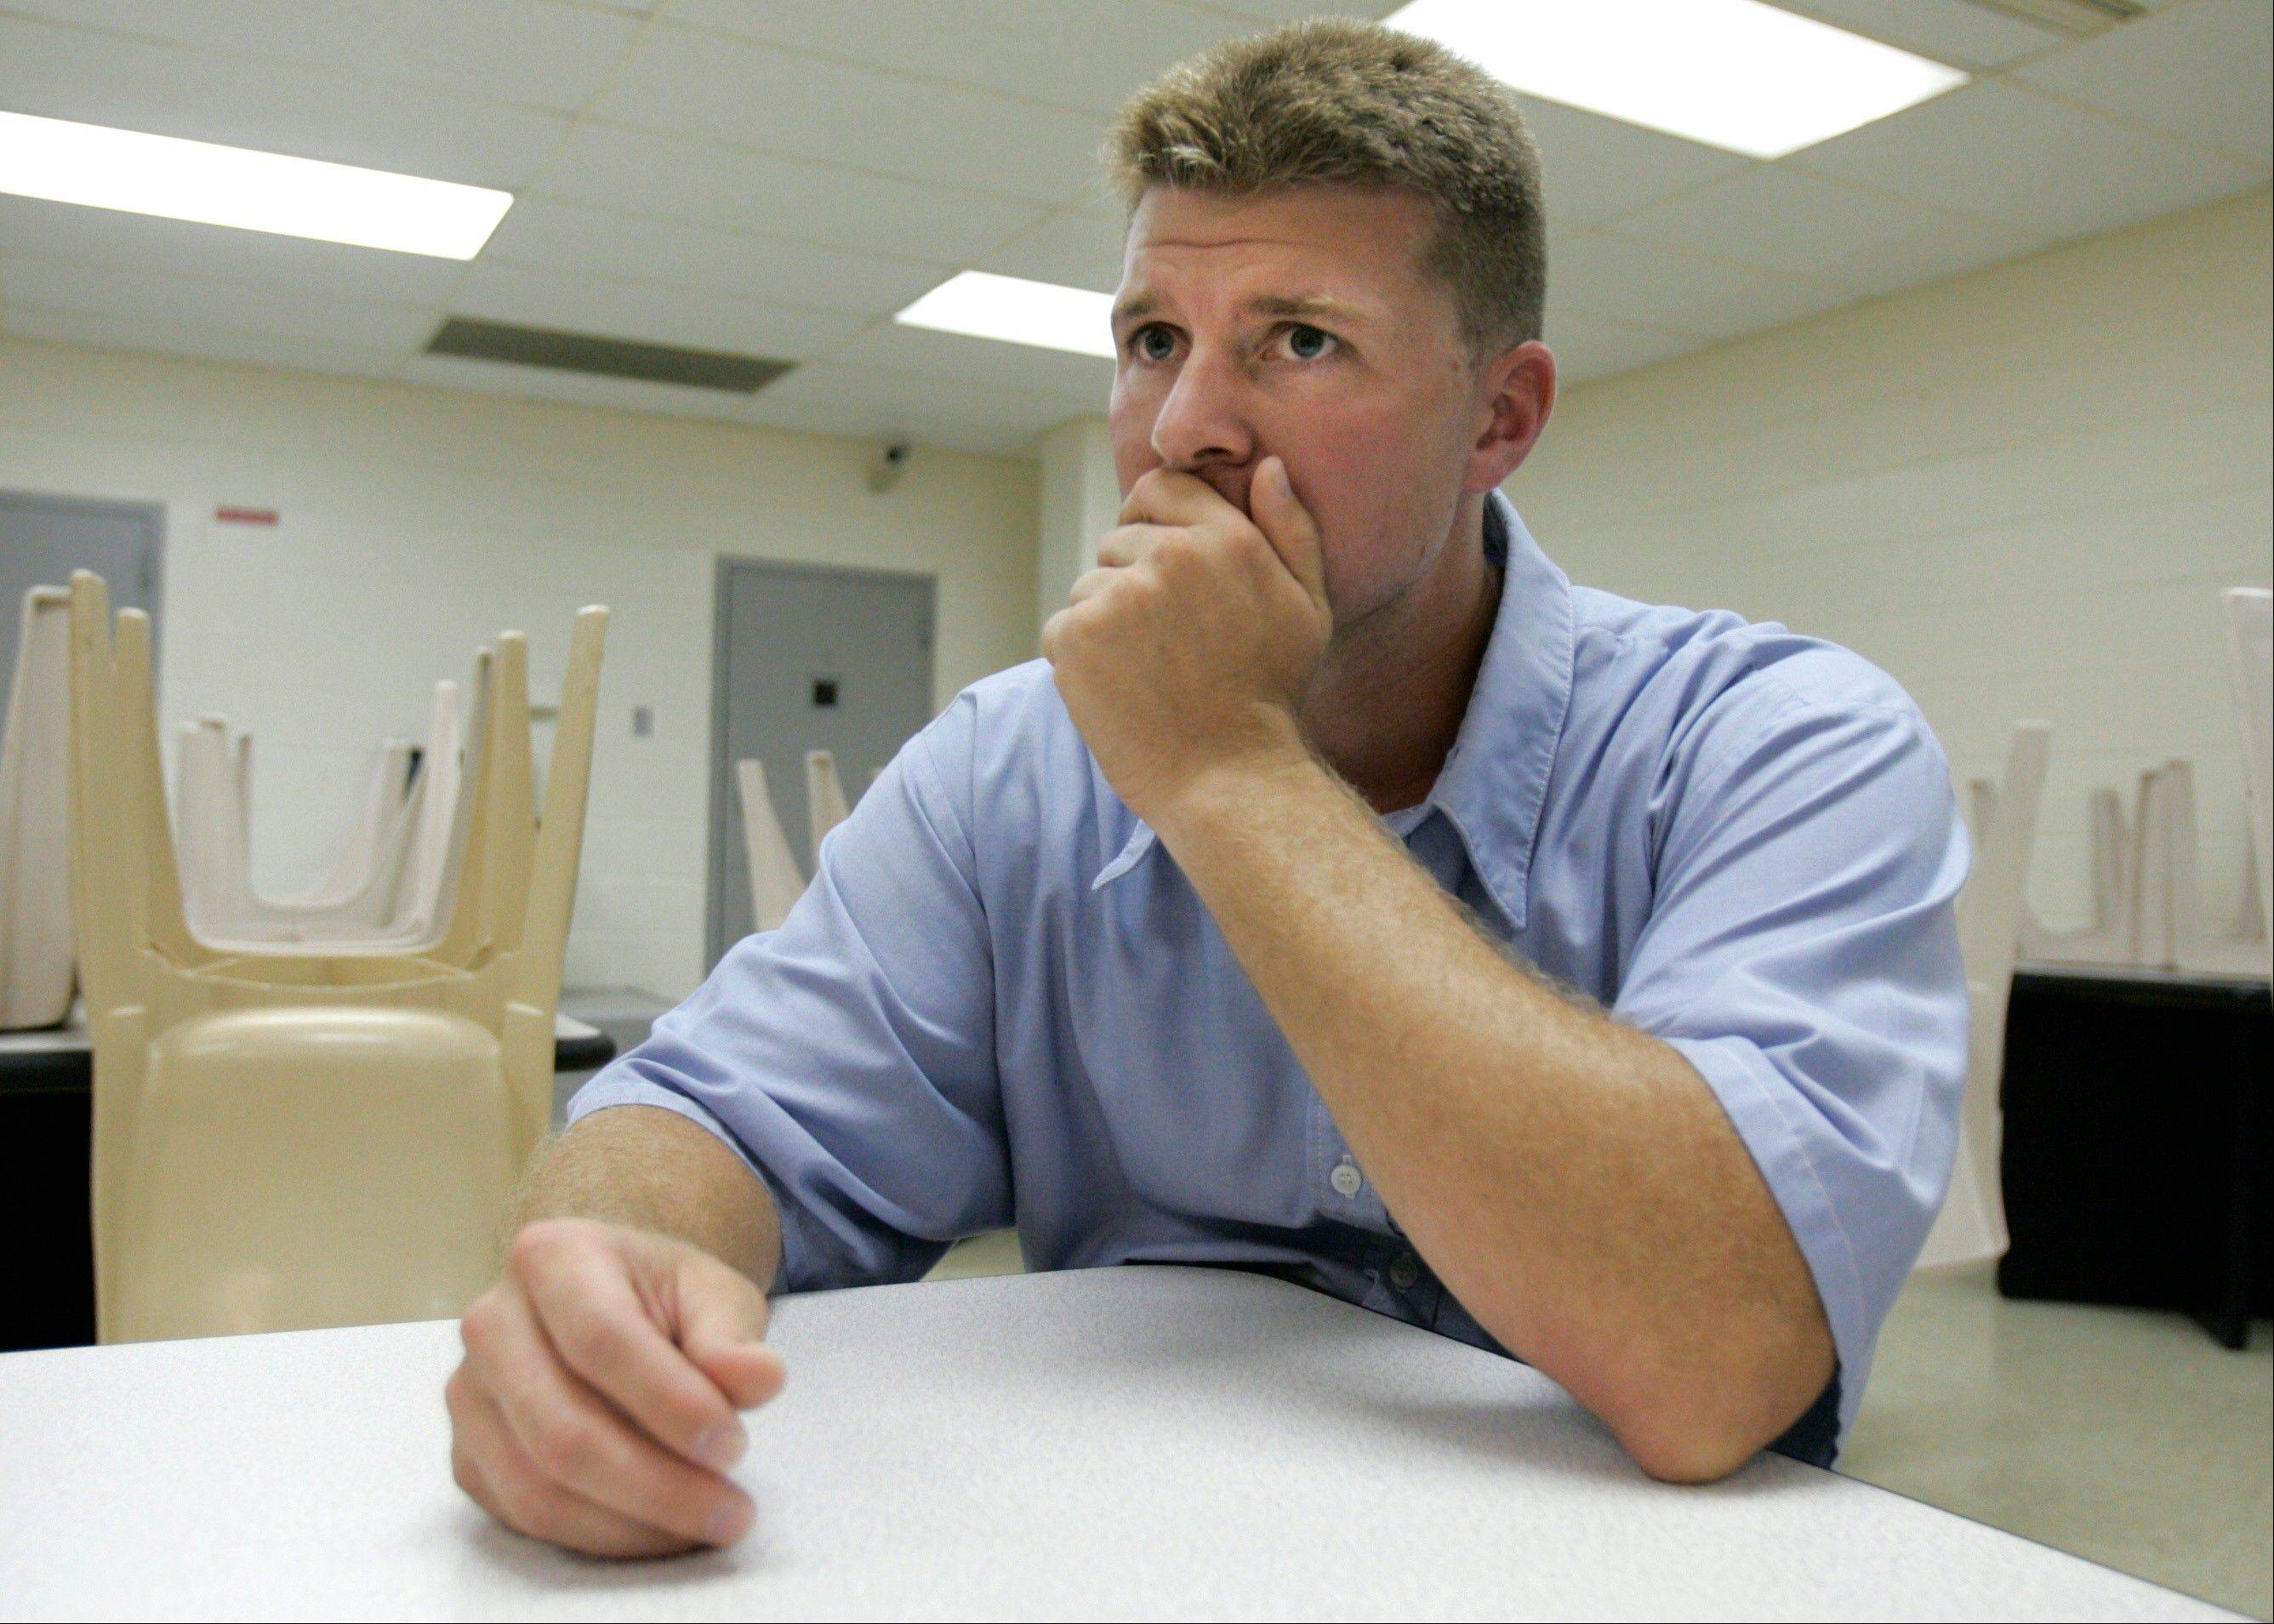 Associated Press/July 8, 2008 Former Navy SEAL trainee Dustin Turner listens to a question during an interview at the Powhatan Correctional Facility in Powhatan, Va.